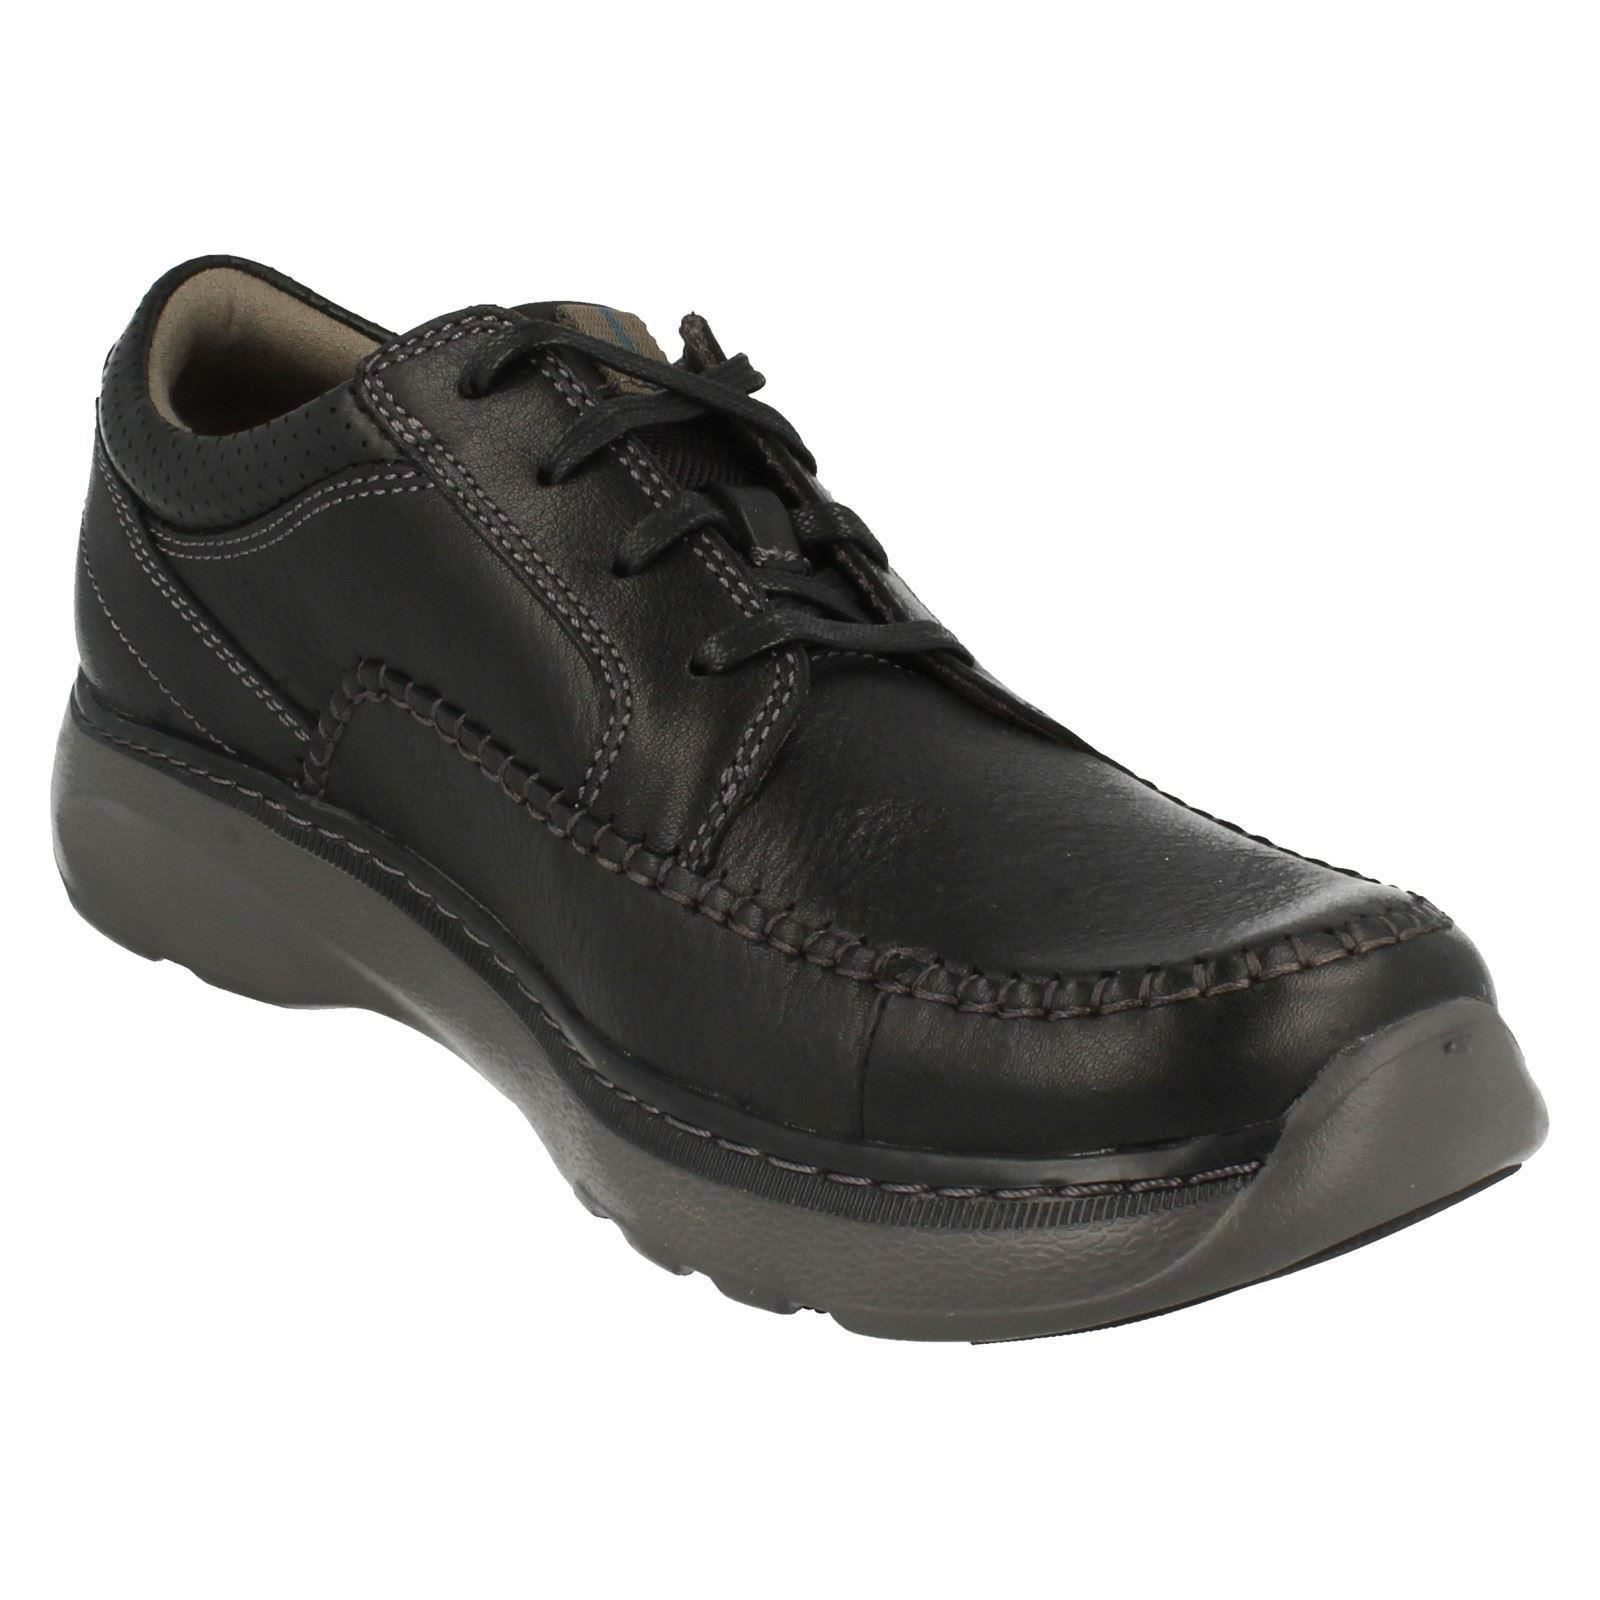 Mens Clarks Casual Lace Up Shoes Charton Vibe